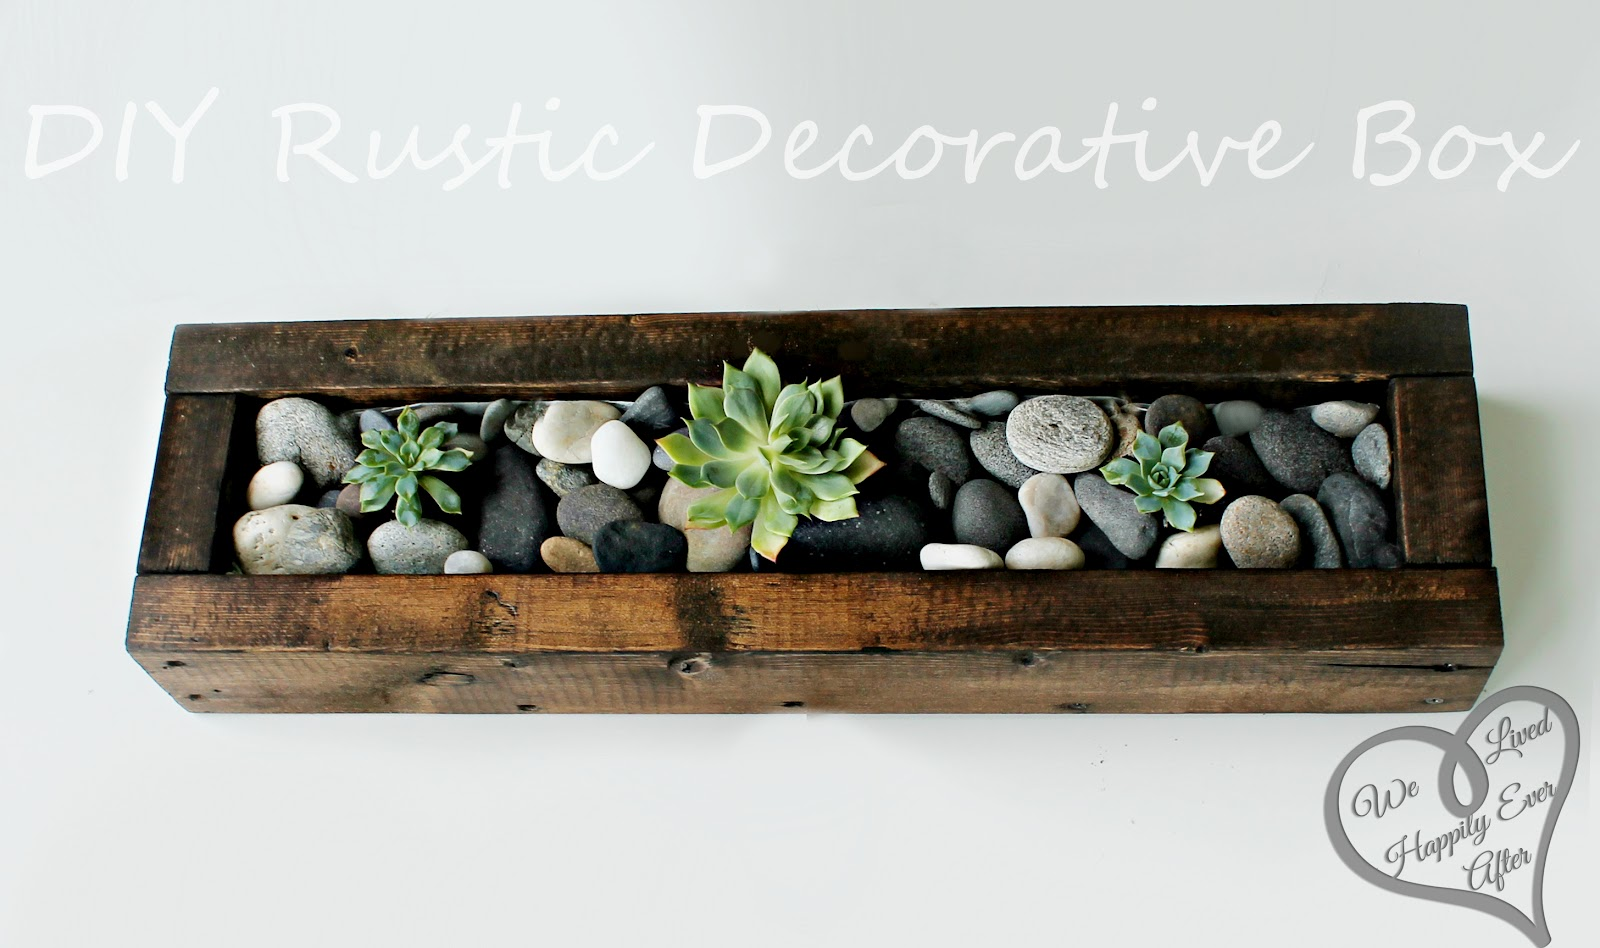 We lived happily ever afterdiy rustic centerpiece box